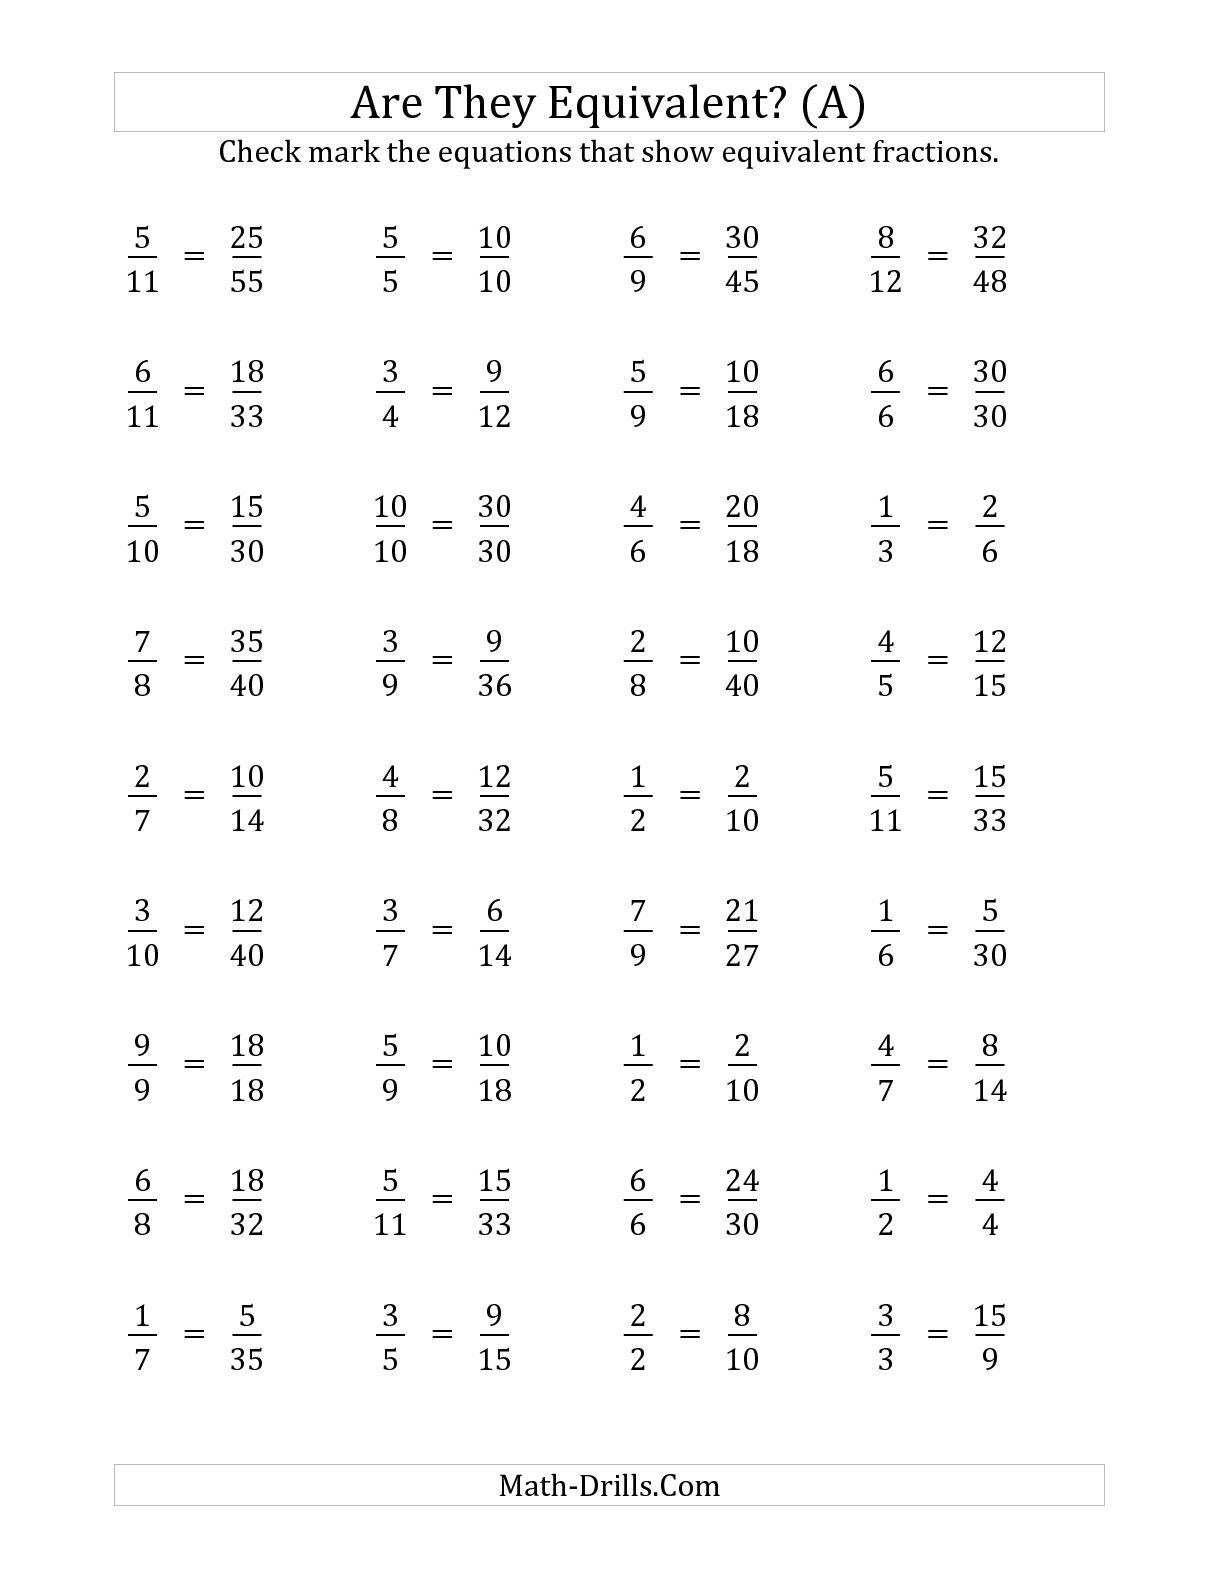 Multiplying Fractions Worksheet 6th Grade the are these Fractions Equivalent Multiplier Range 2 to 5